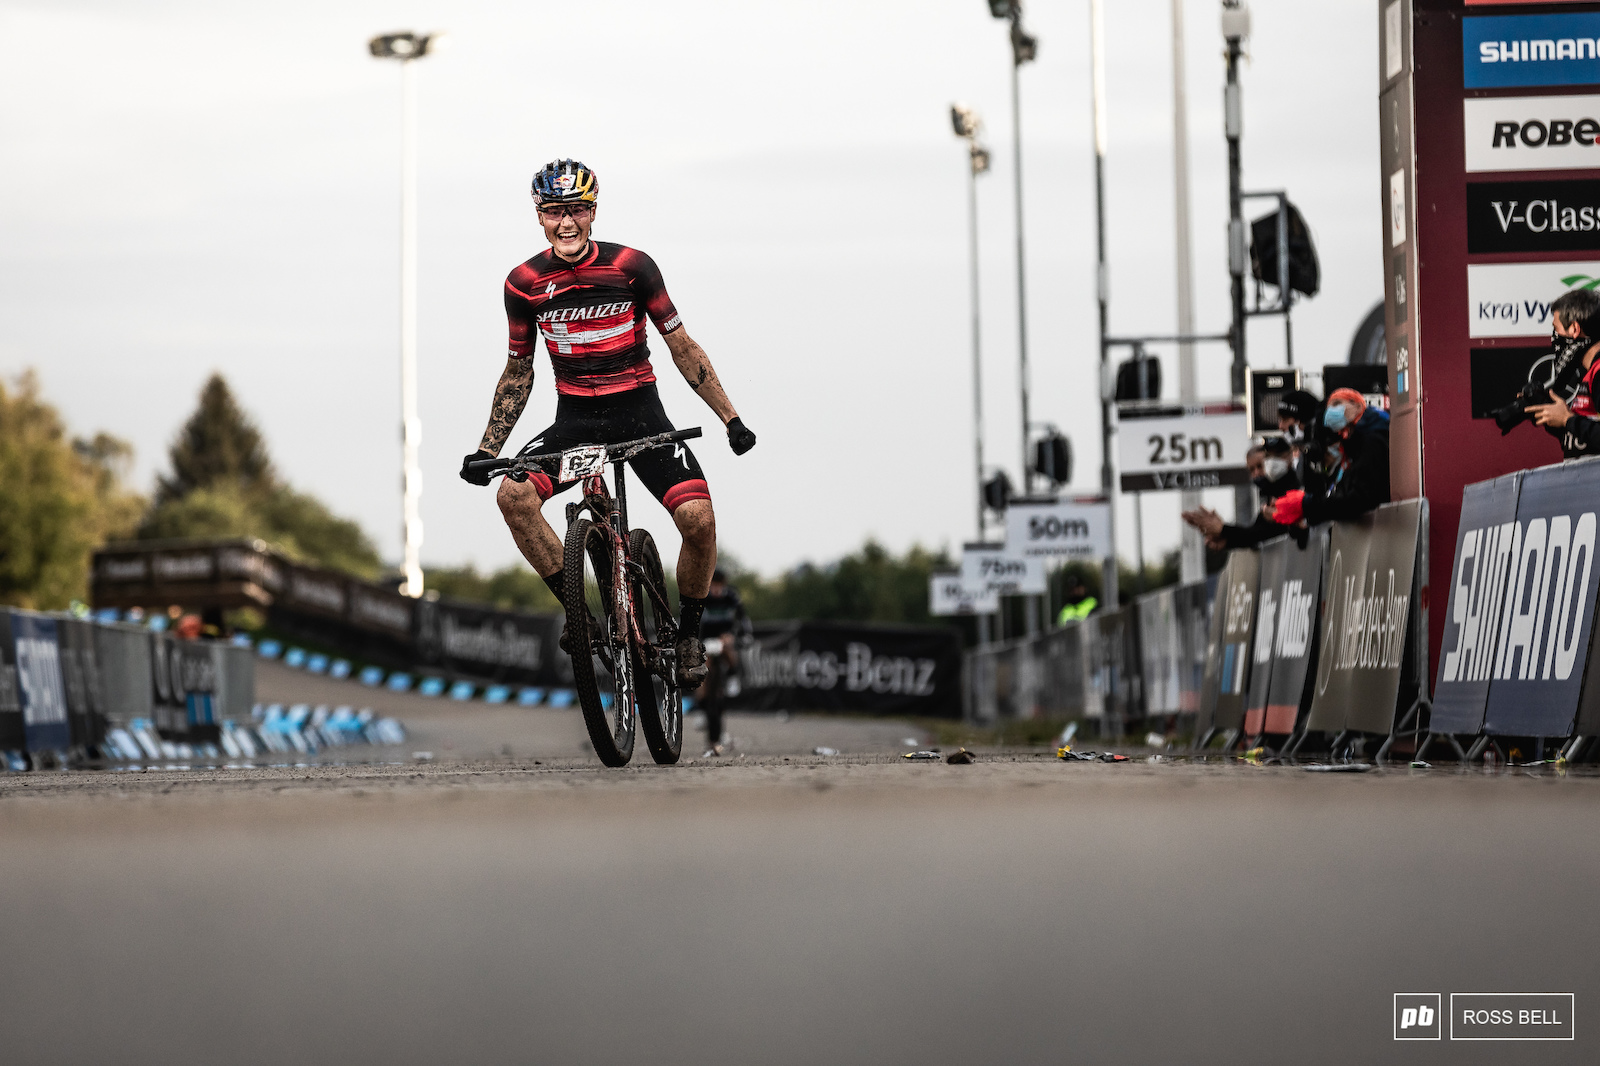 That first World Cup win for Simon Andreassen.